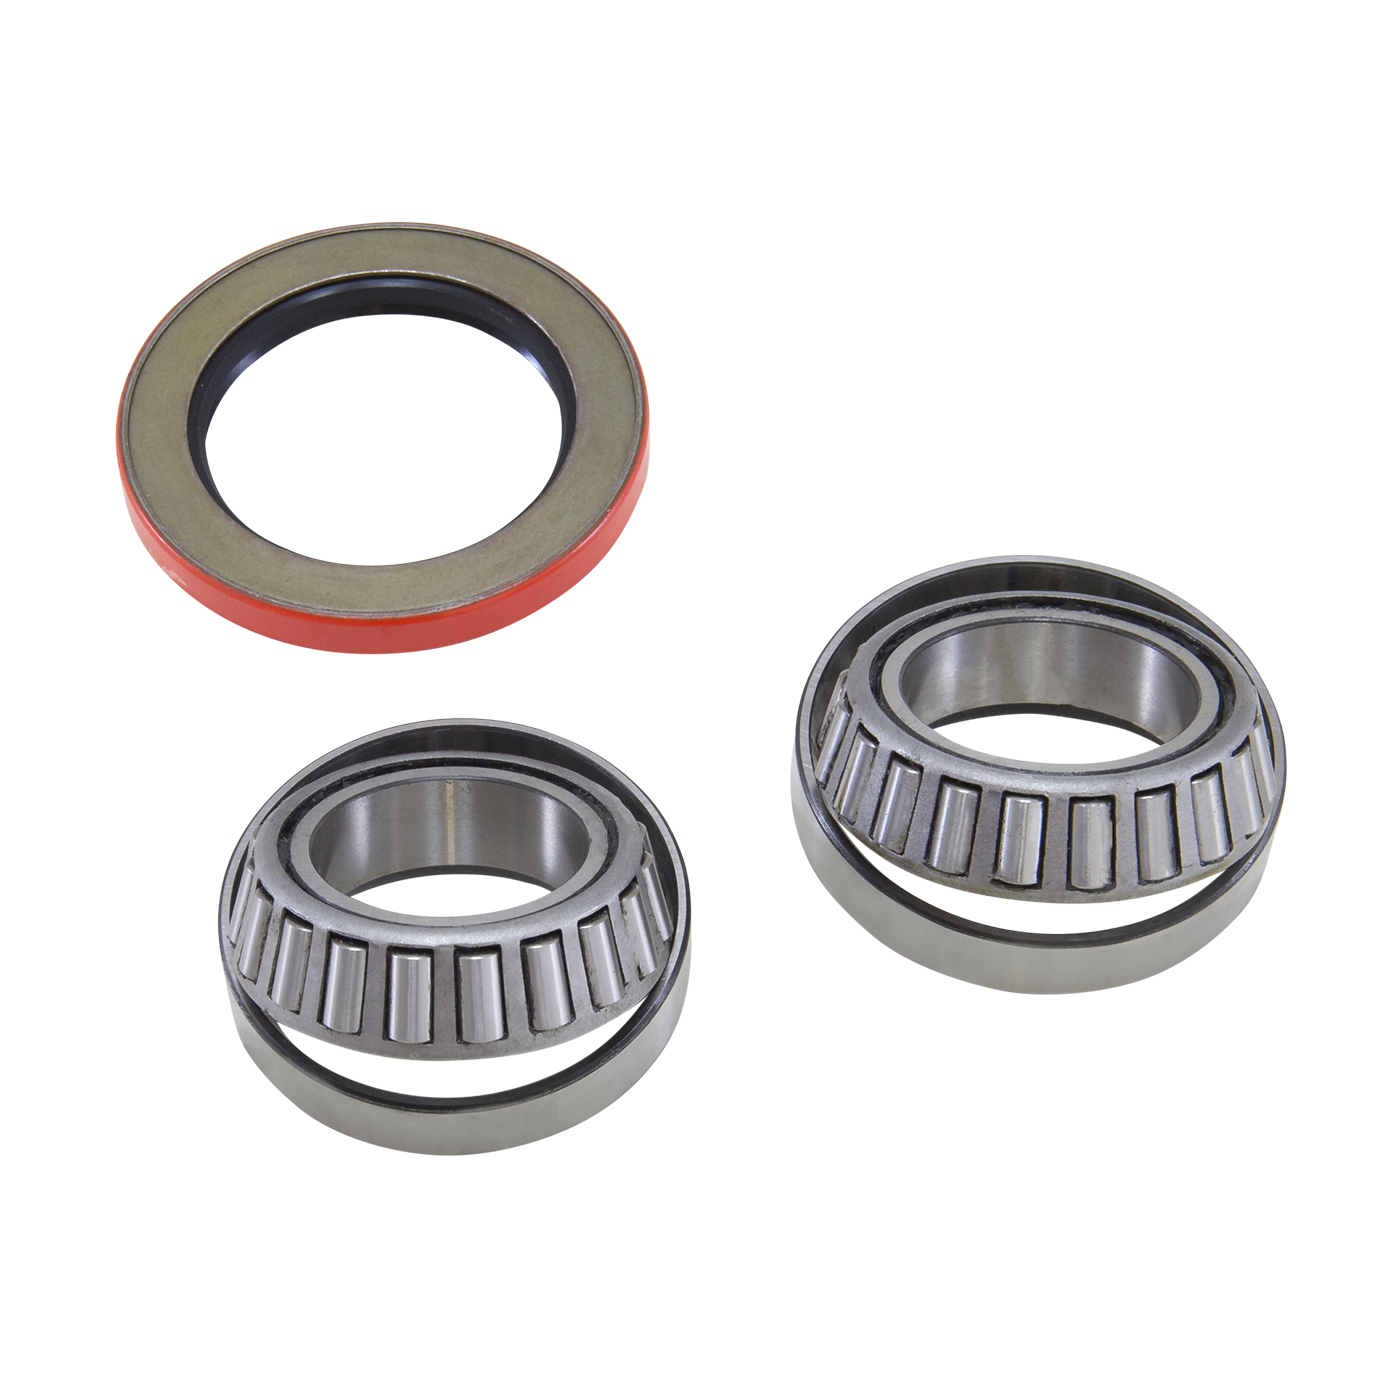 AK F-G05 - Yukon Front Axle Bearing and Seal Kit for Dana 44